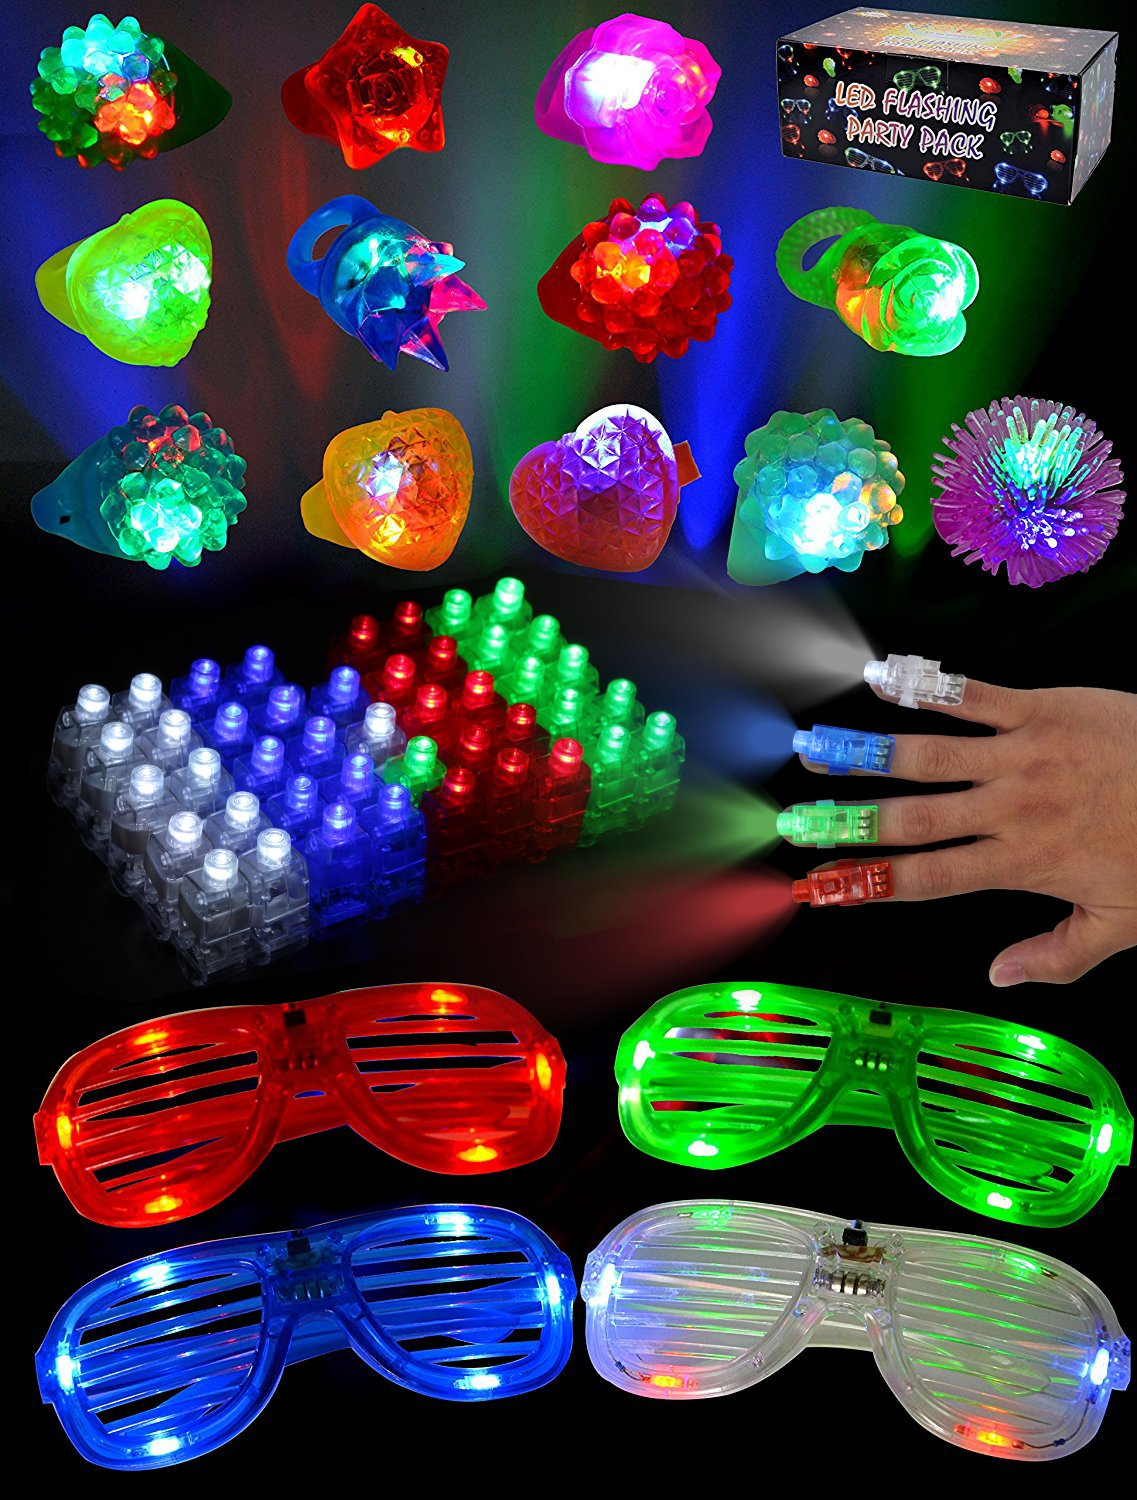 Joyin Toy 60 Pieces LED Light Up Toy Glow in the Dark Party Supplies, Party Favors for Kids with 44 LED Finger Lights, 12 LED Flashing Bumpy Rings and 4 Flashing Slotted Shades Glasses